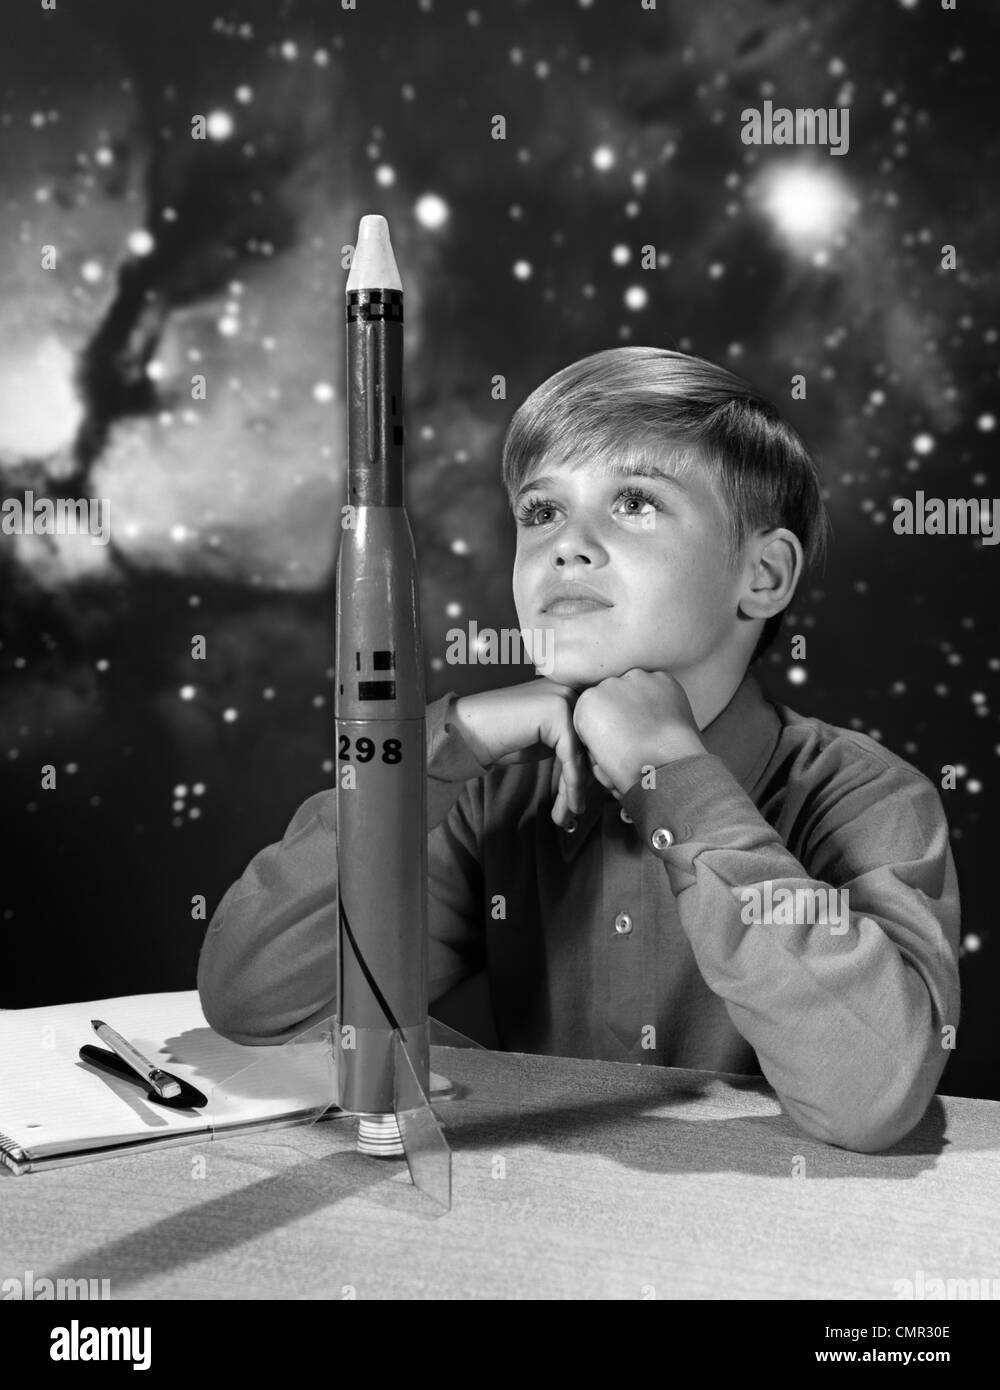 1960s BOY WITH MODEL ROCKET AND OUTER SPACE BACKGROUND - Stock Image